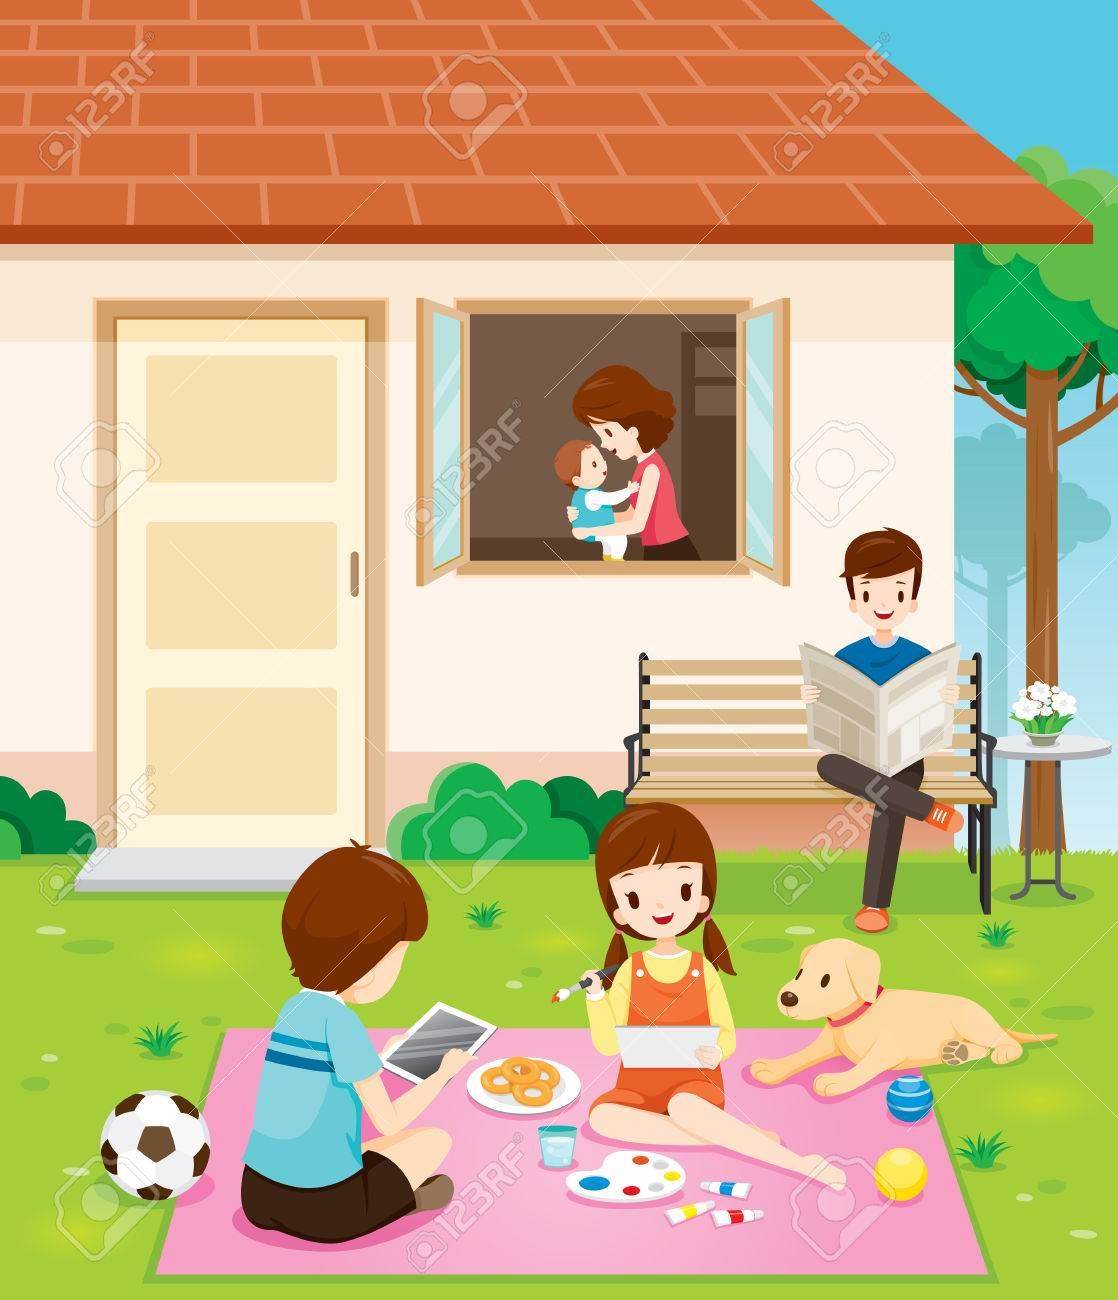 Happy Family Relaxing With Activities At Their Home House Building